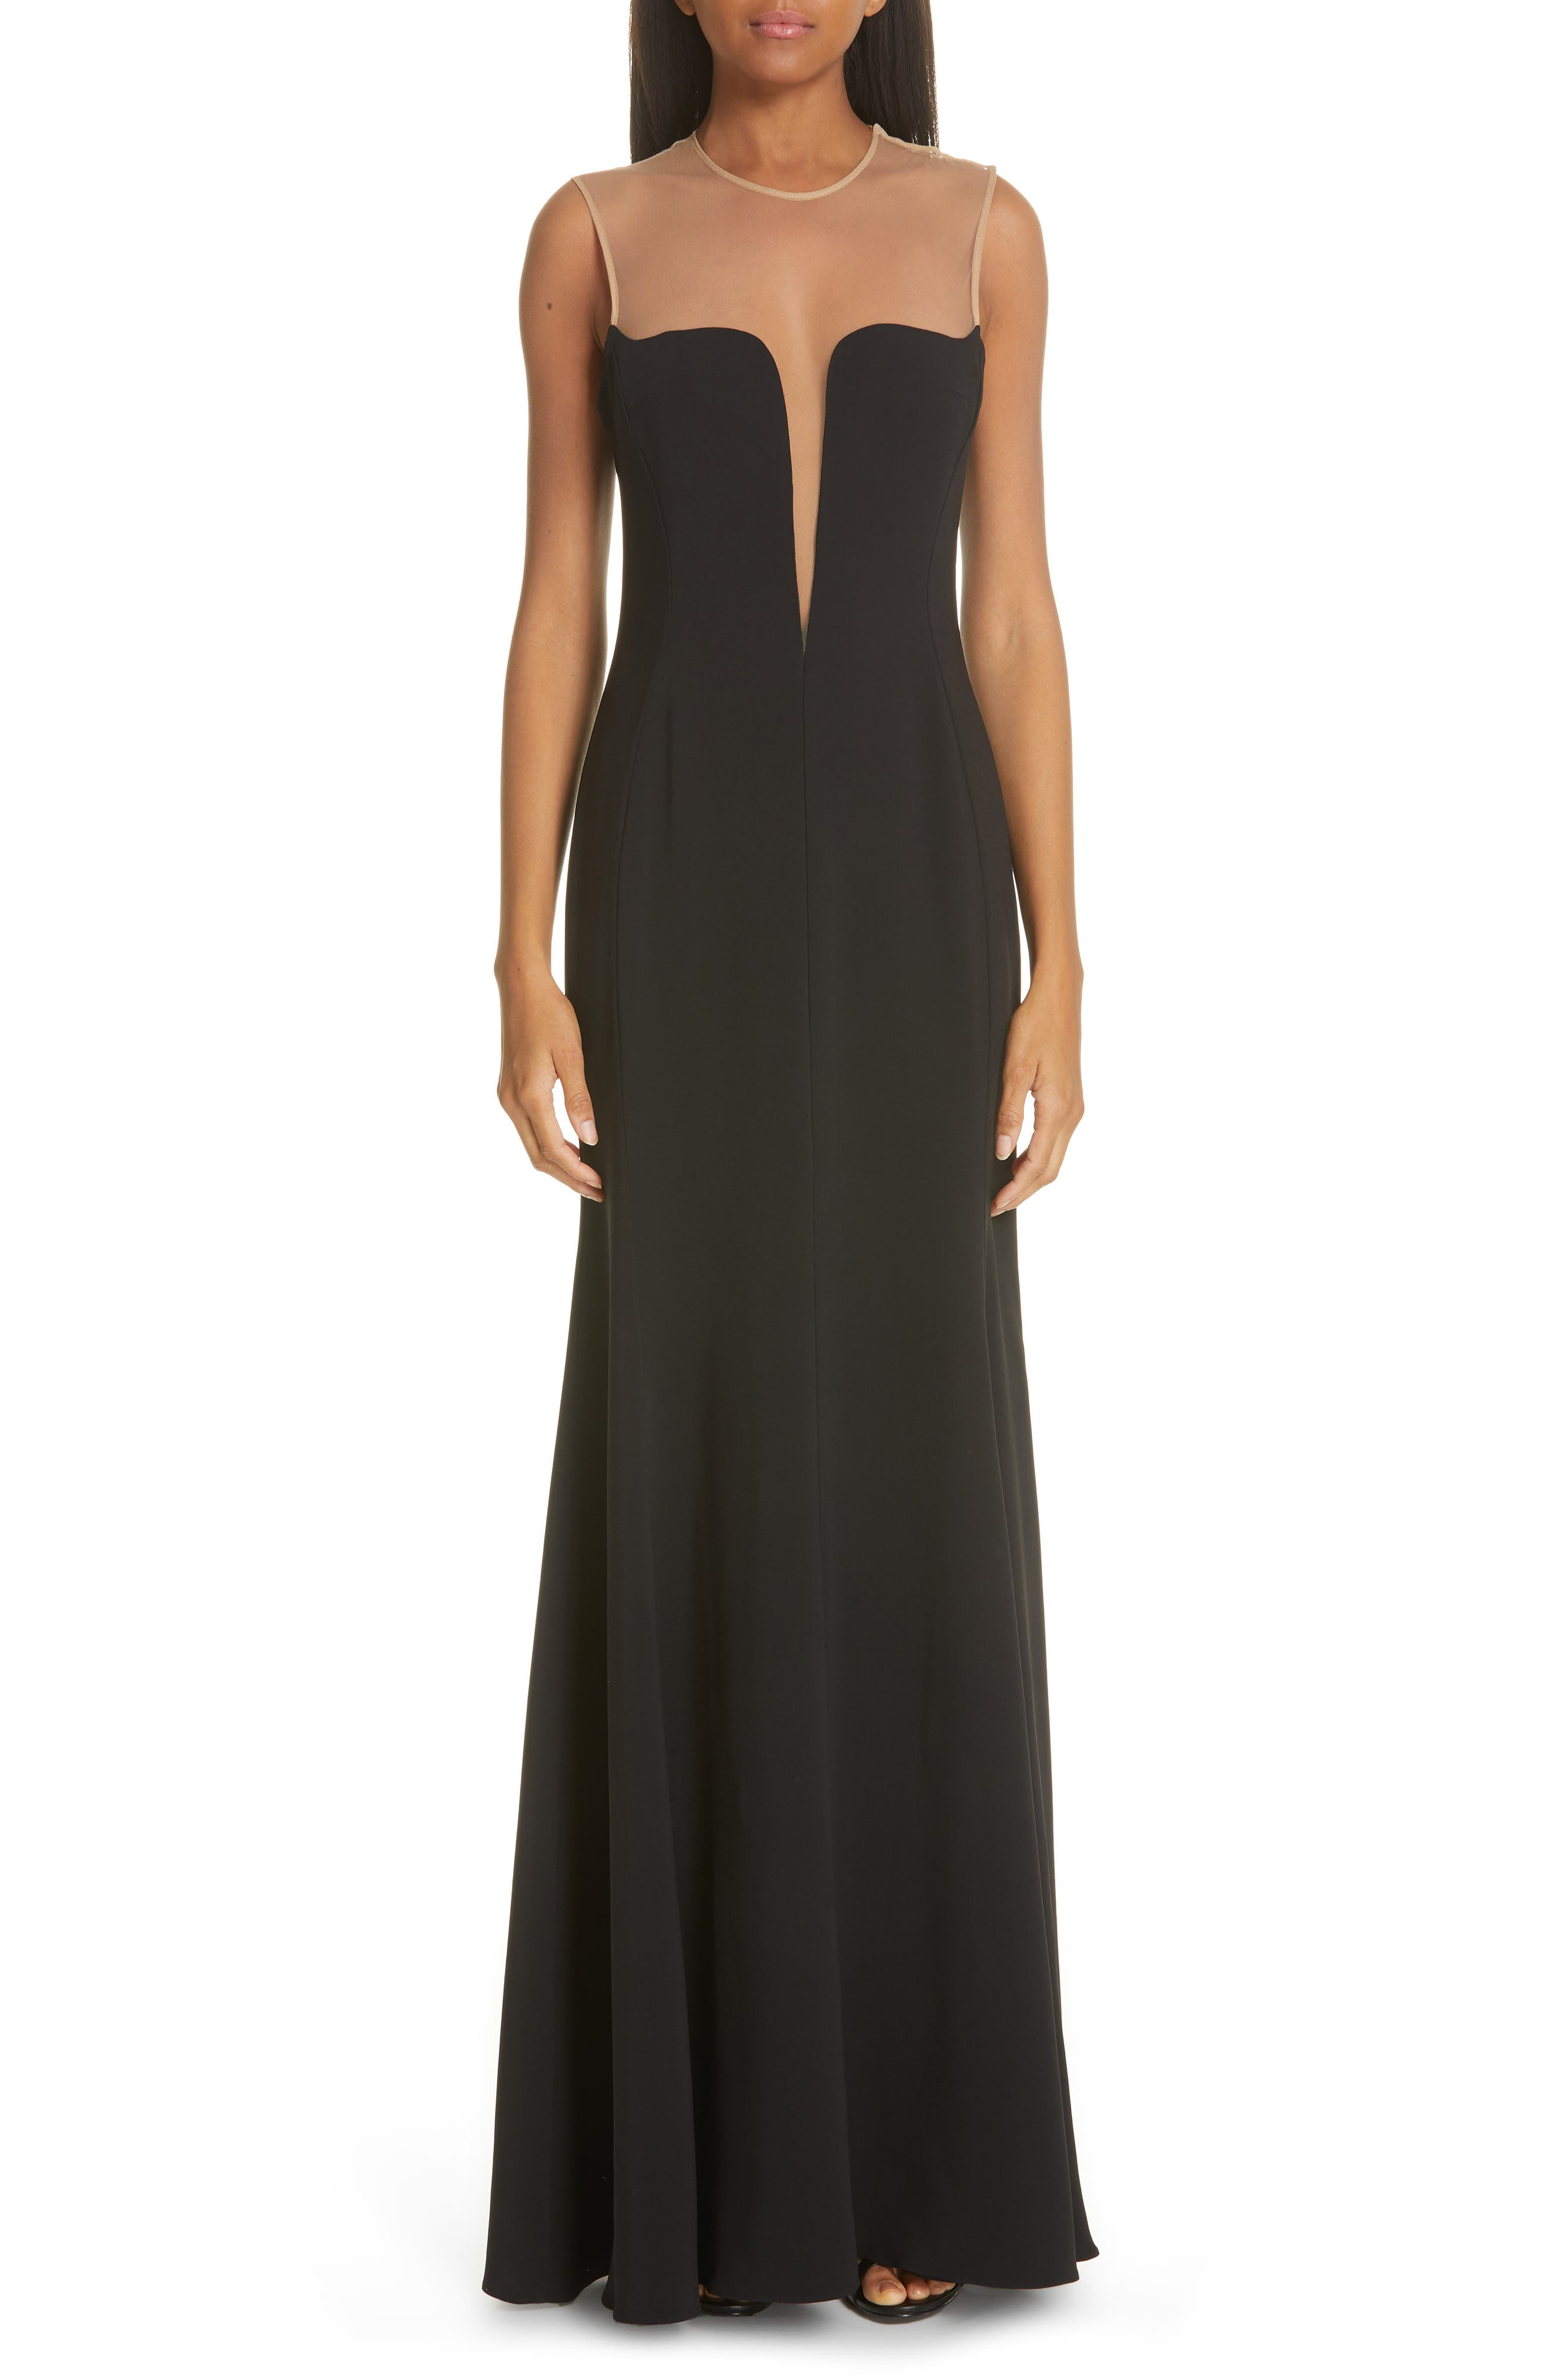 Stella Mccartney Illusion Yoke Dress, US / 46 IT - Black